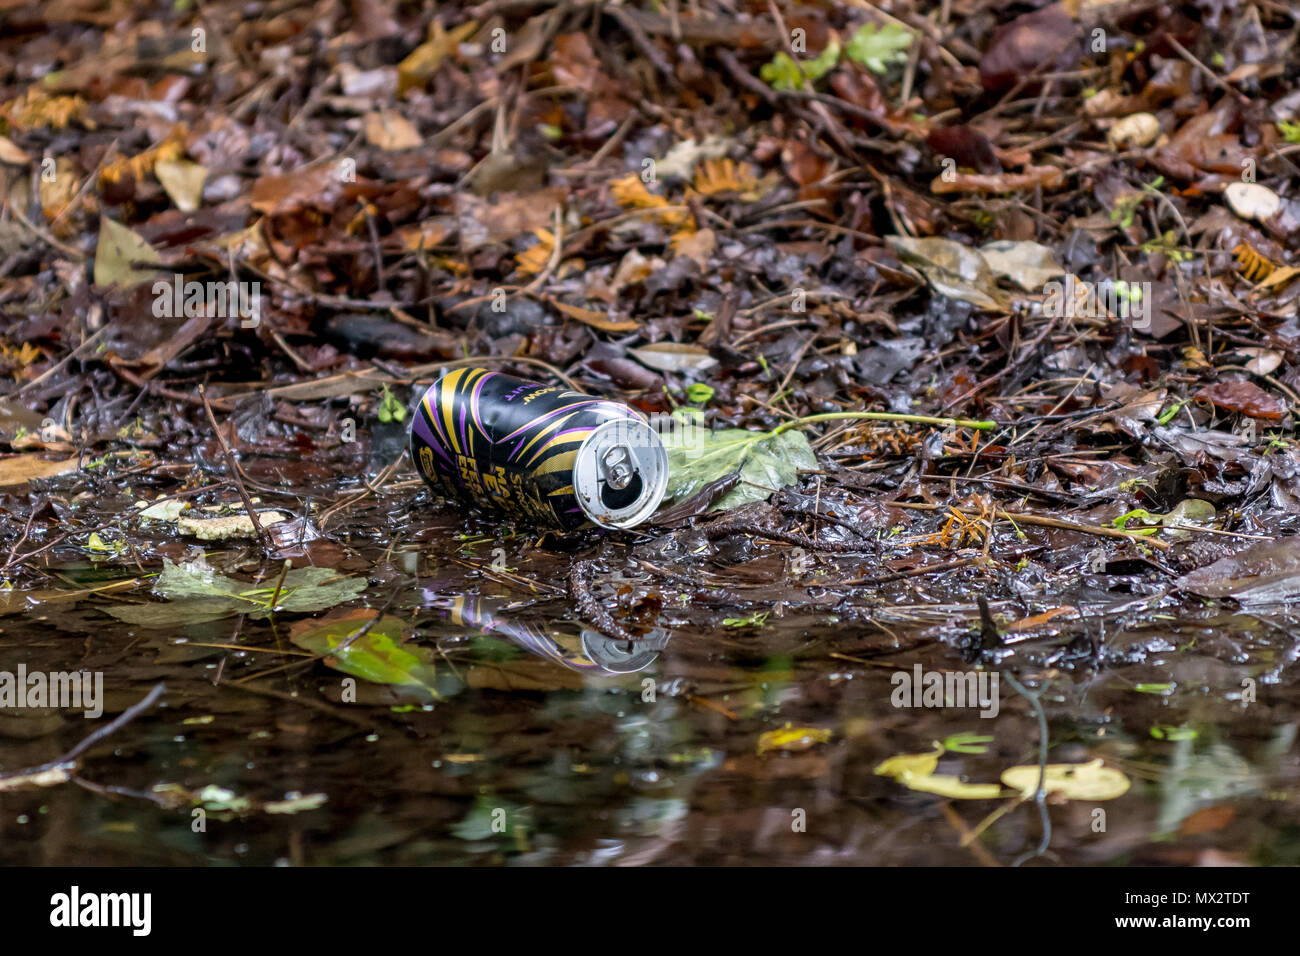 Aluminium drink can discarded as litter, lying on the ground amongst leaves and woody debris, close beside dark water puddle. - Stock Image